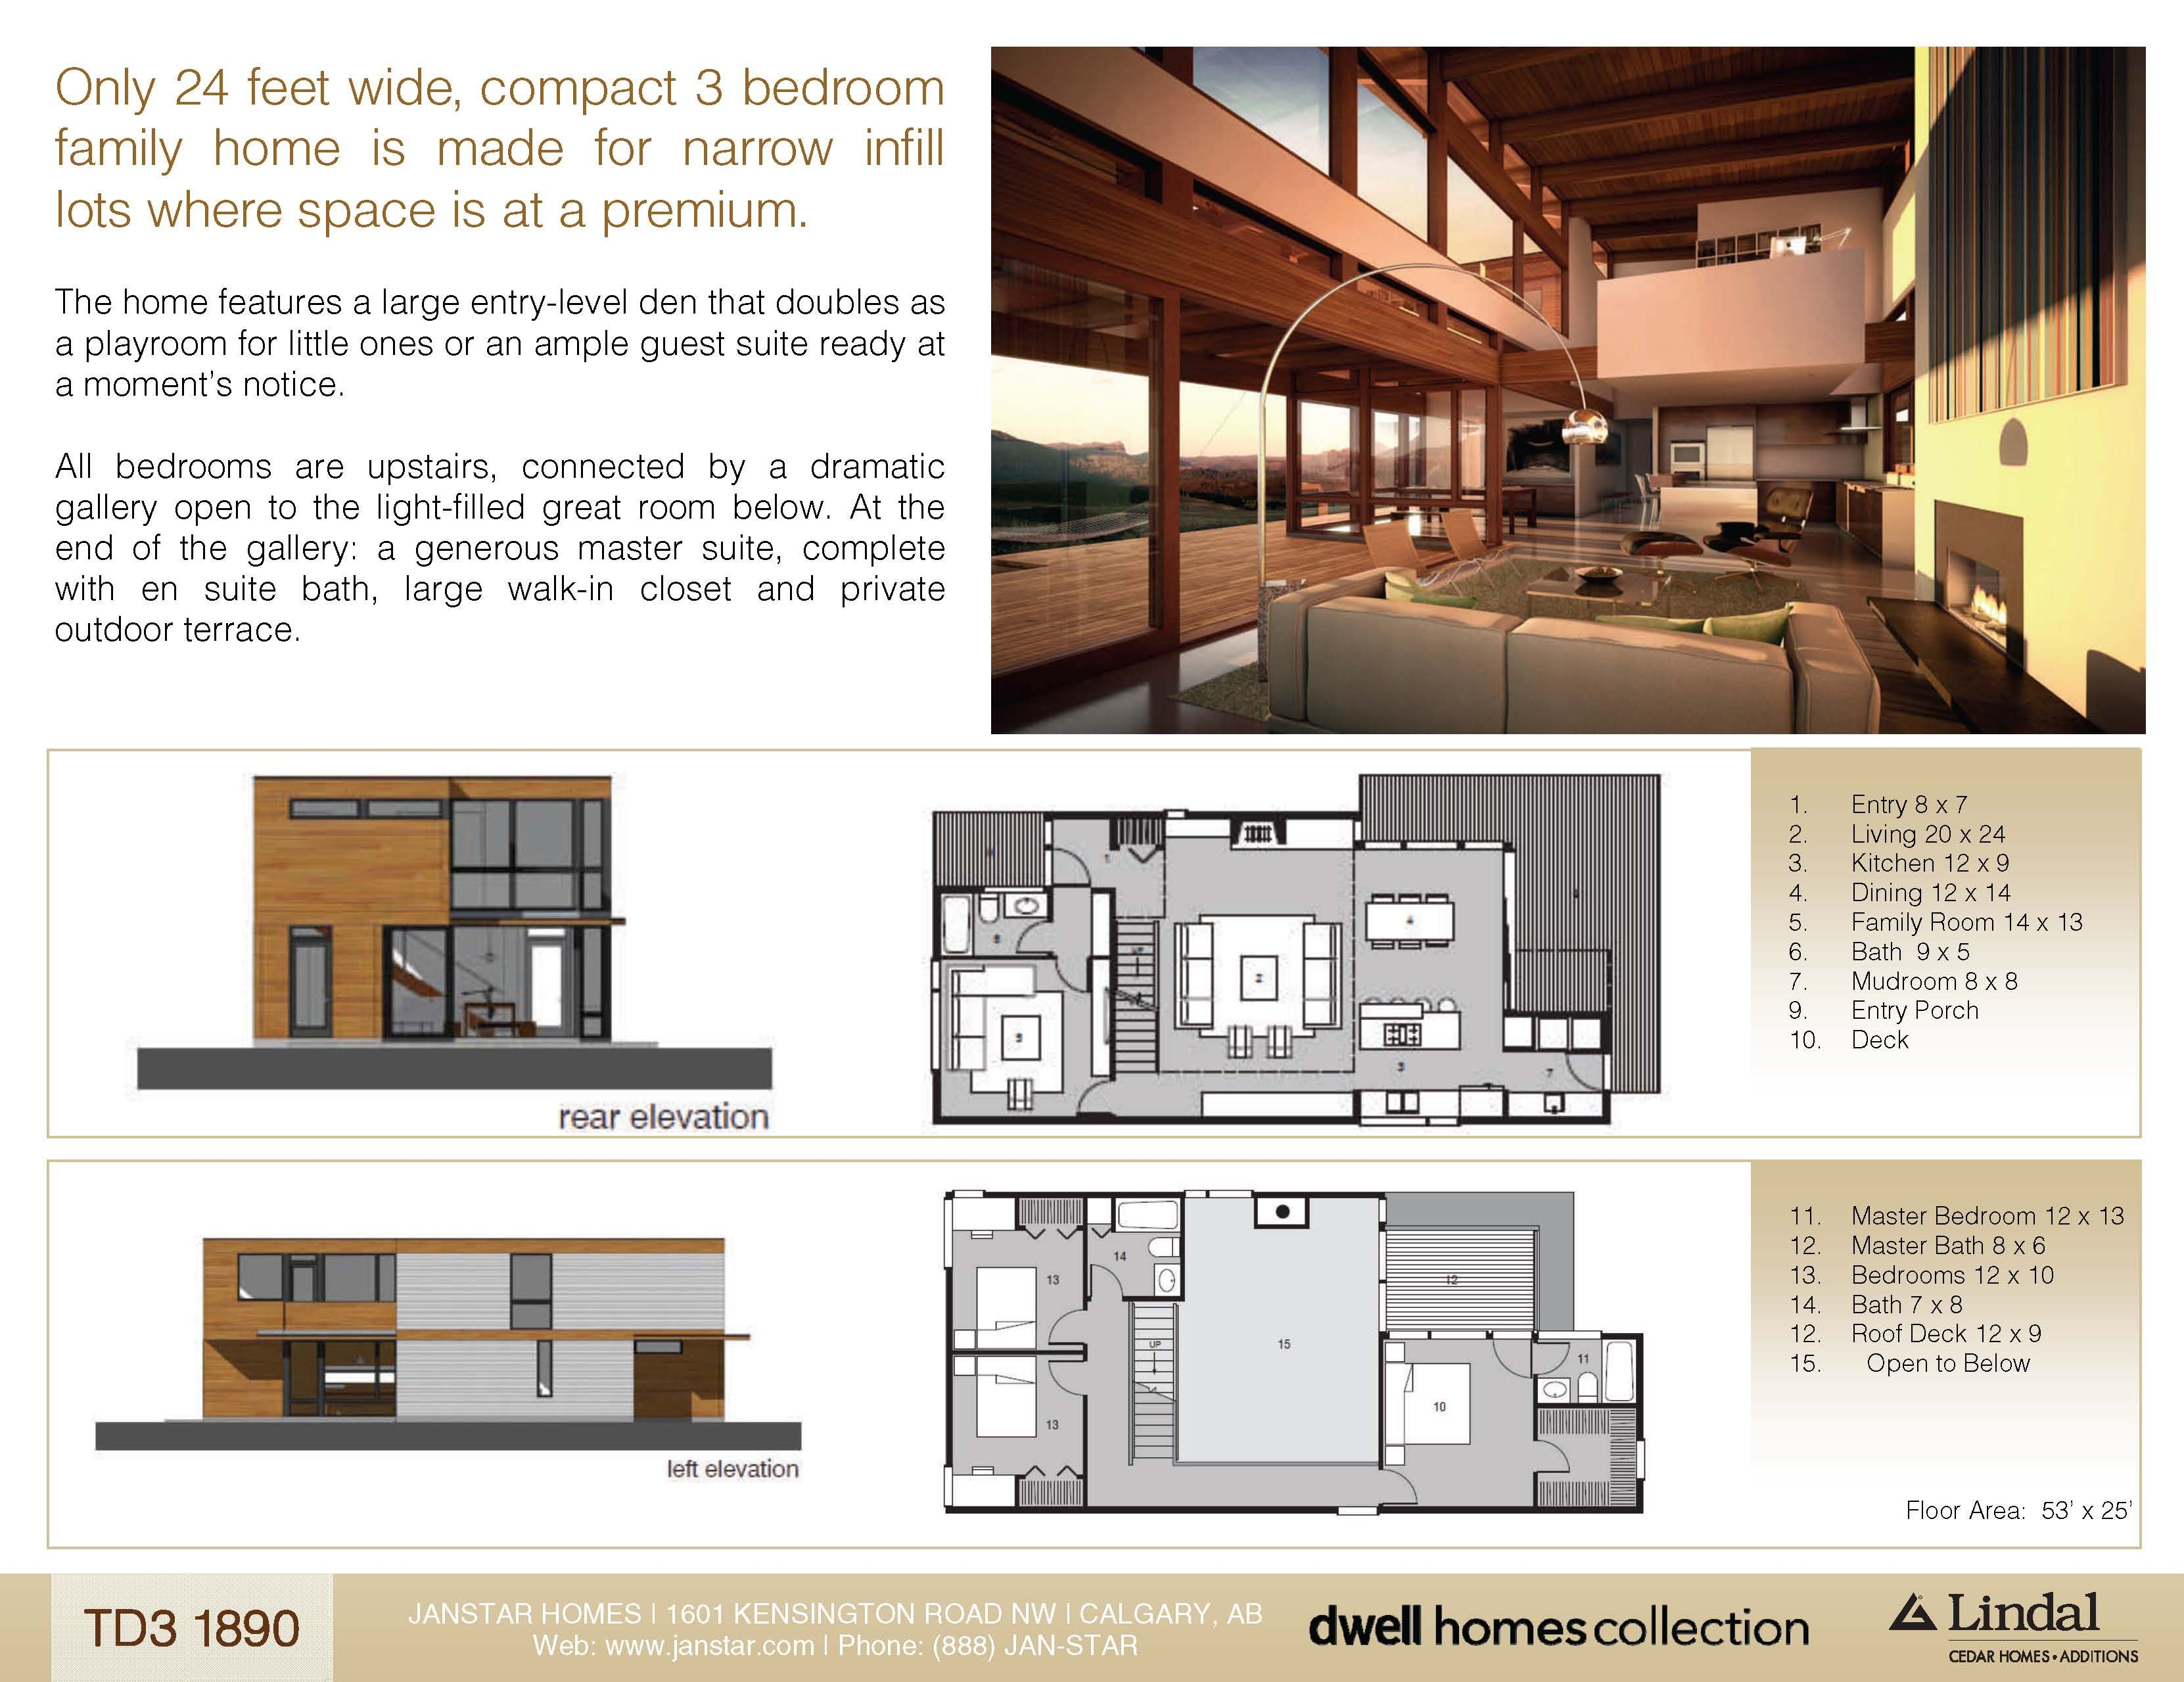 TD3_1890 Lindal Homes - Dwell Homes Collection 24ft wide, made ...